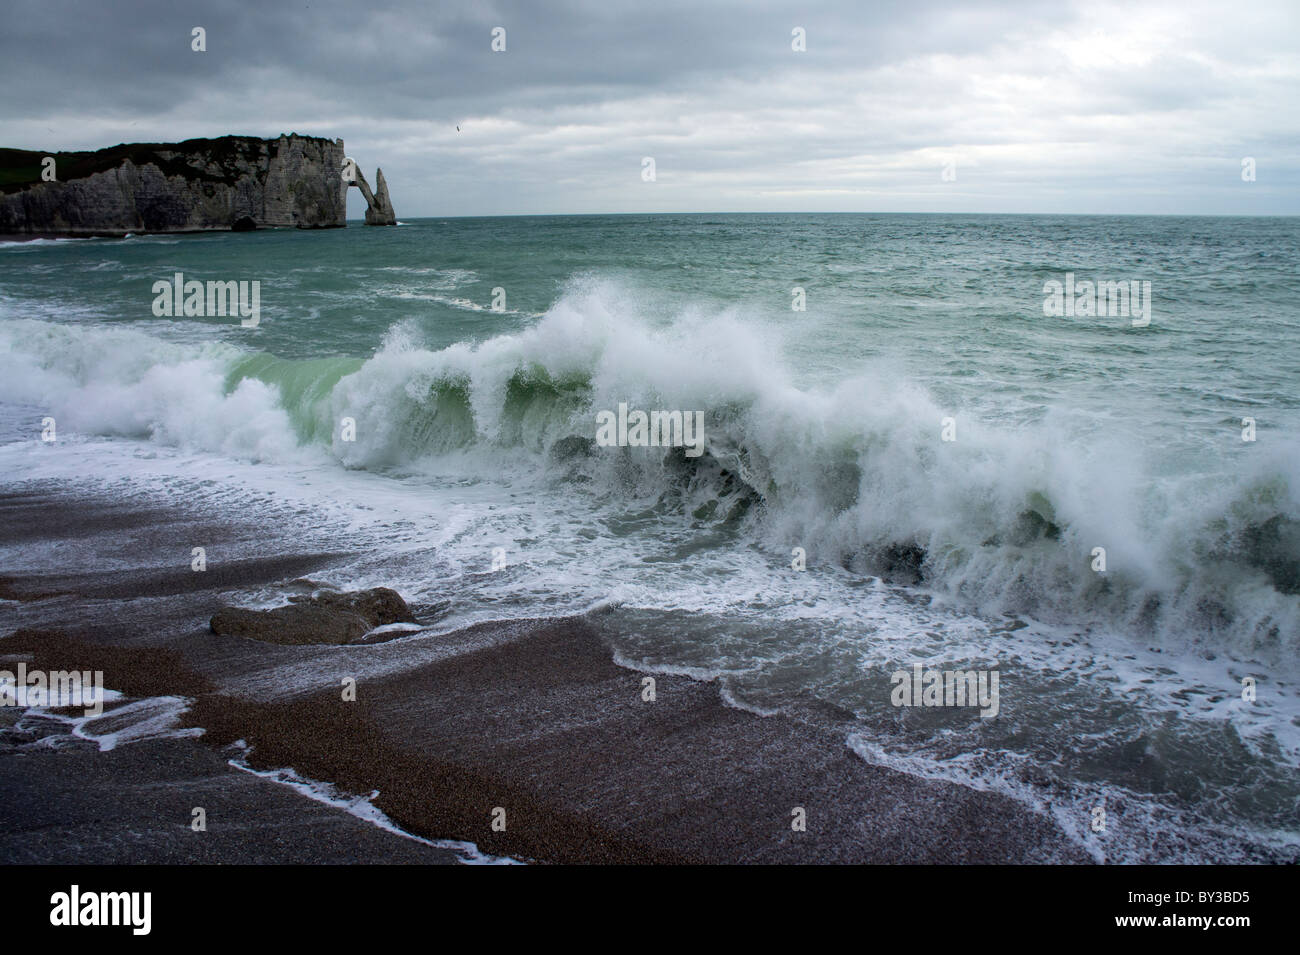 France, Normandy, Normandie, Etretat, stormy weather - Stock Image